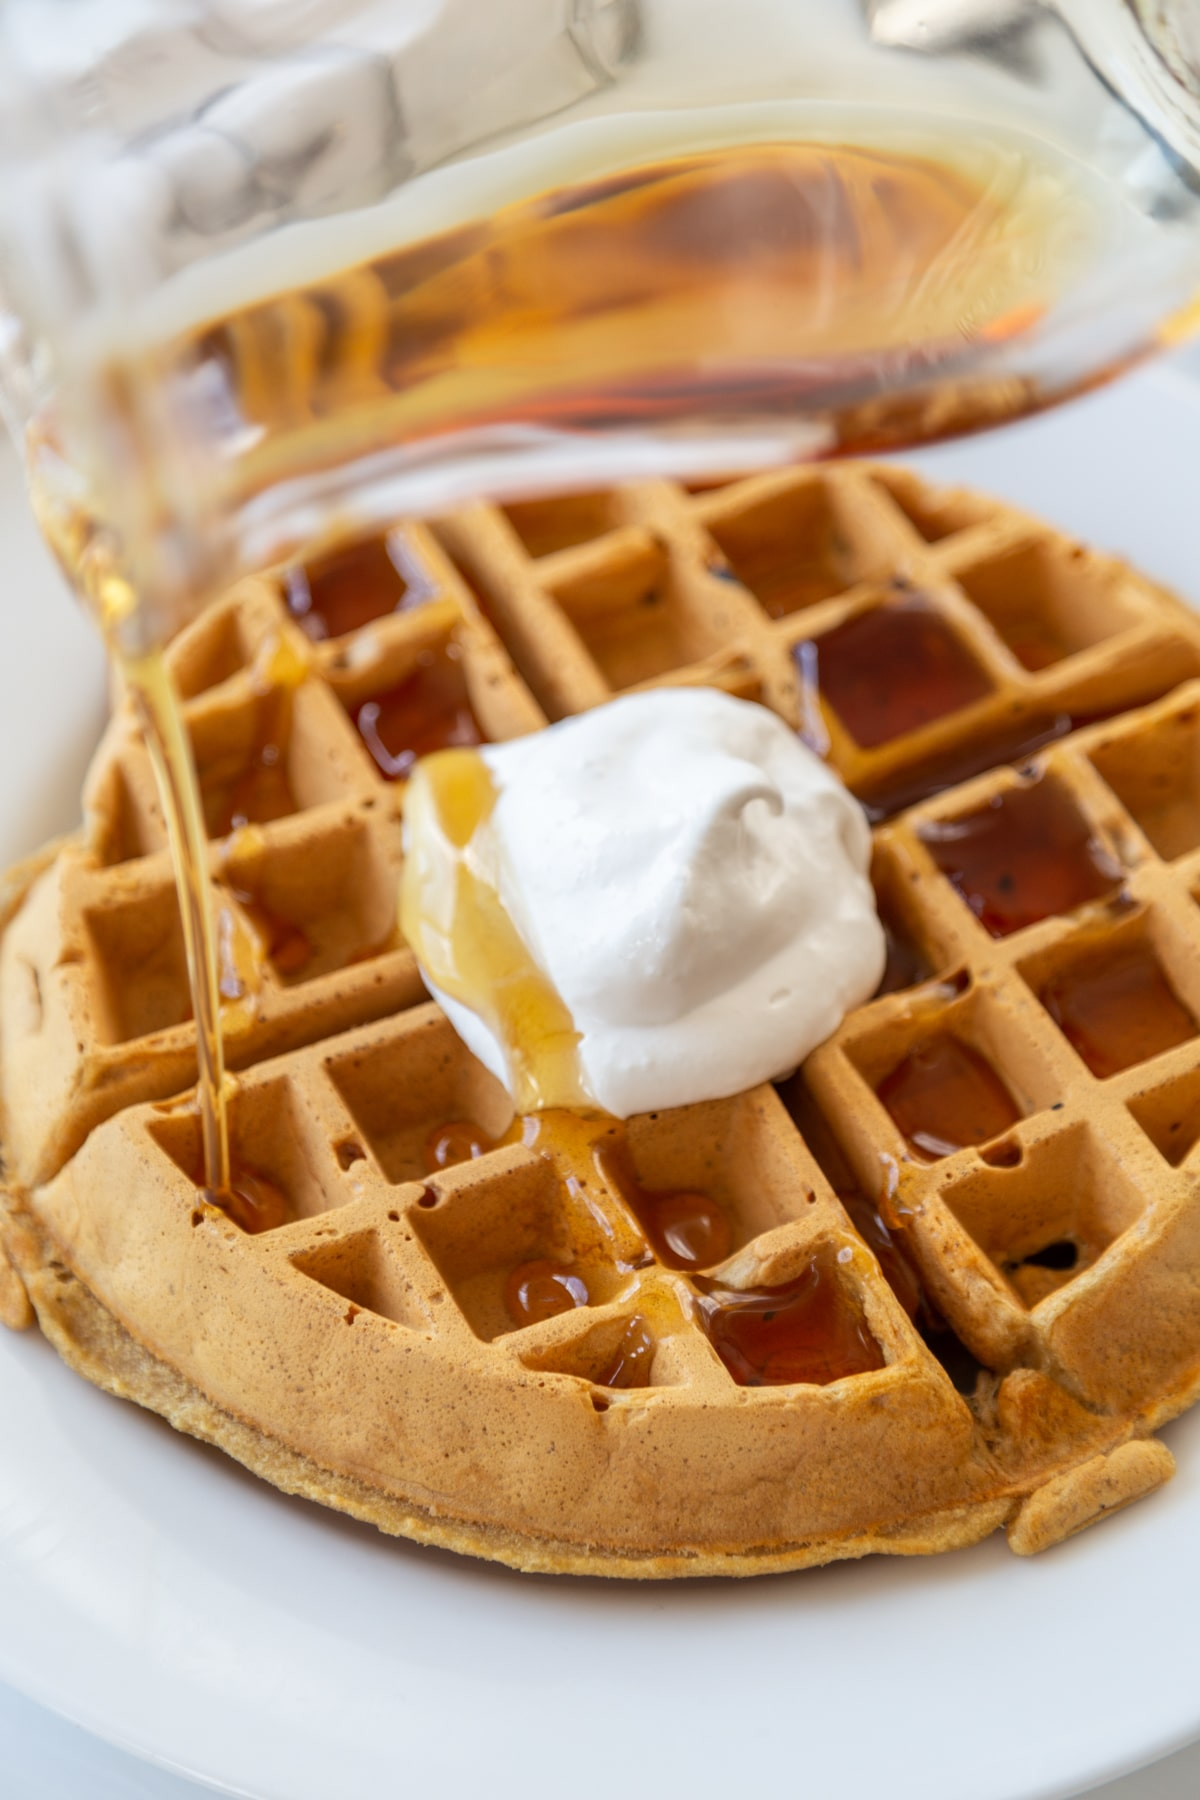 A Belgian waffle with maple syrup being poured over the waffle and whipped topping on a white plate.